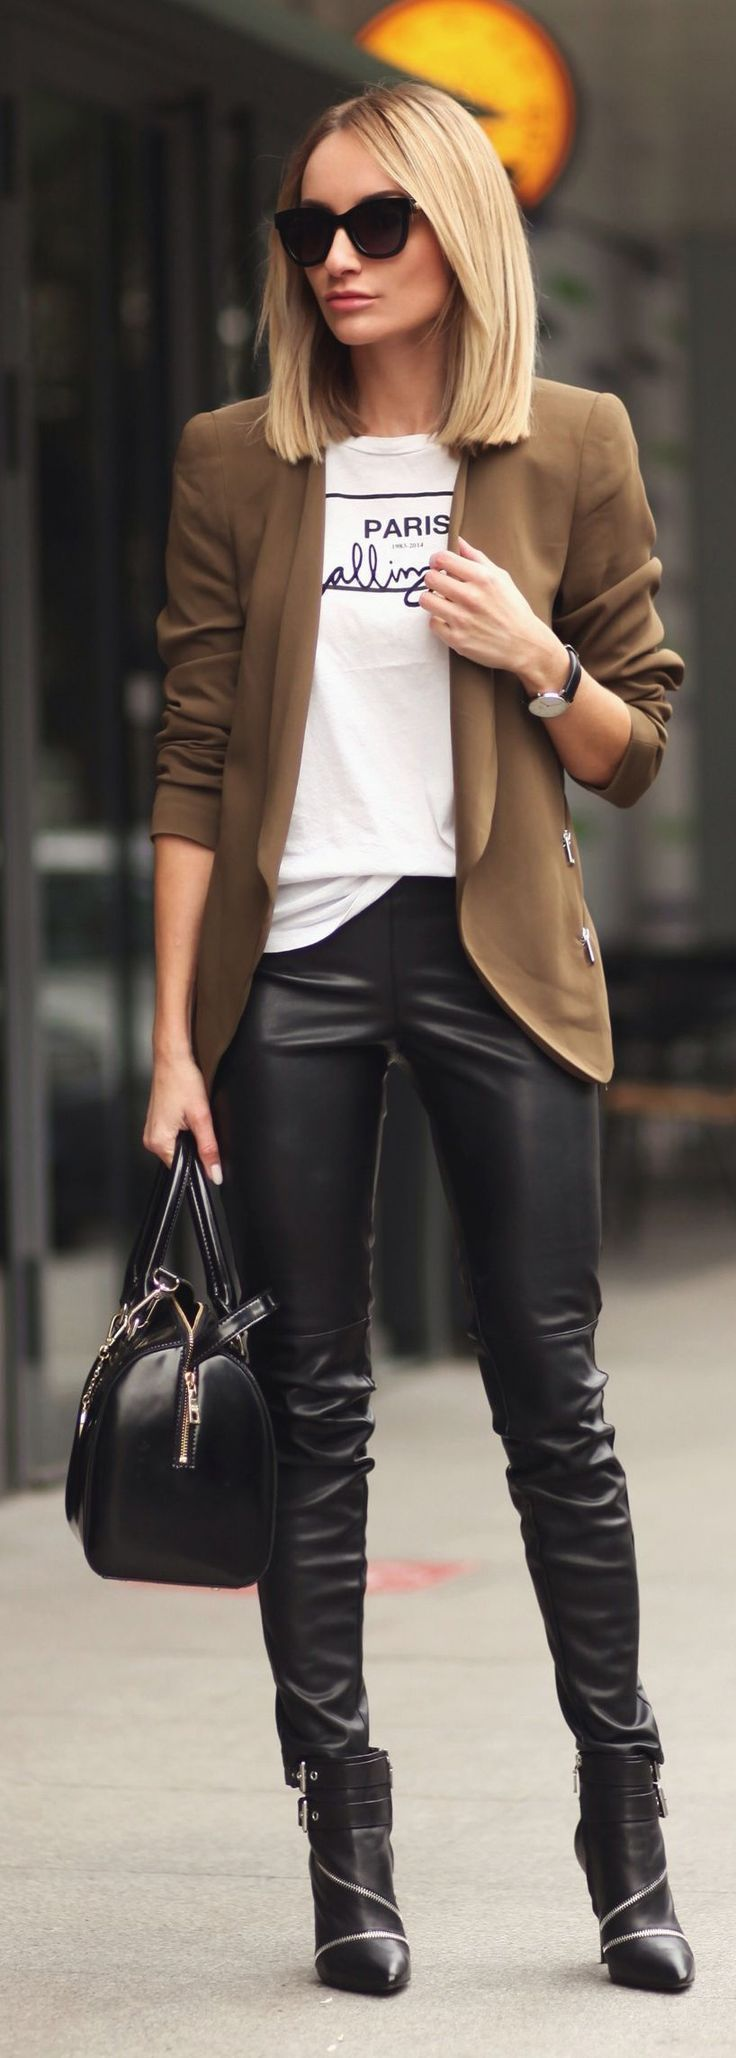 21 outfit ideas to a pretty street look glam